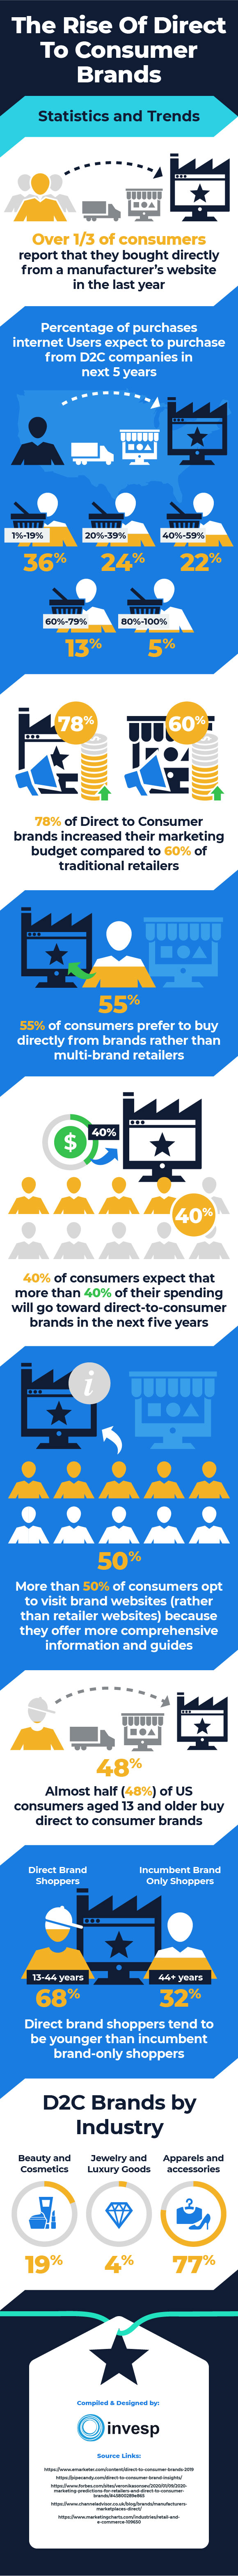 The Rise of Direct to consumer brands – Statistics and Trends